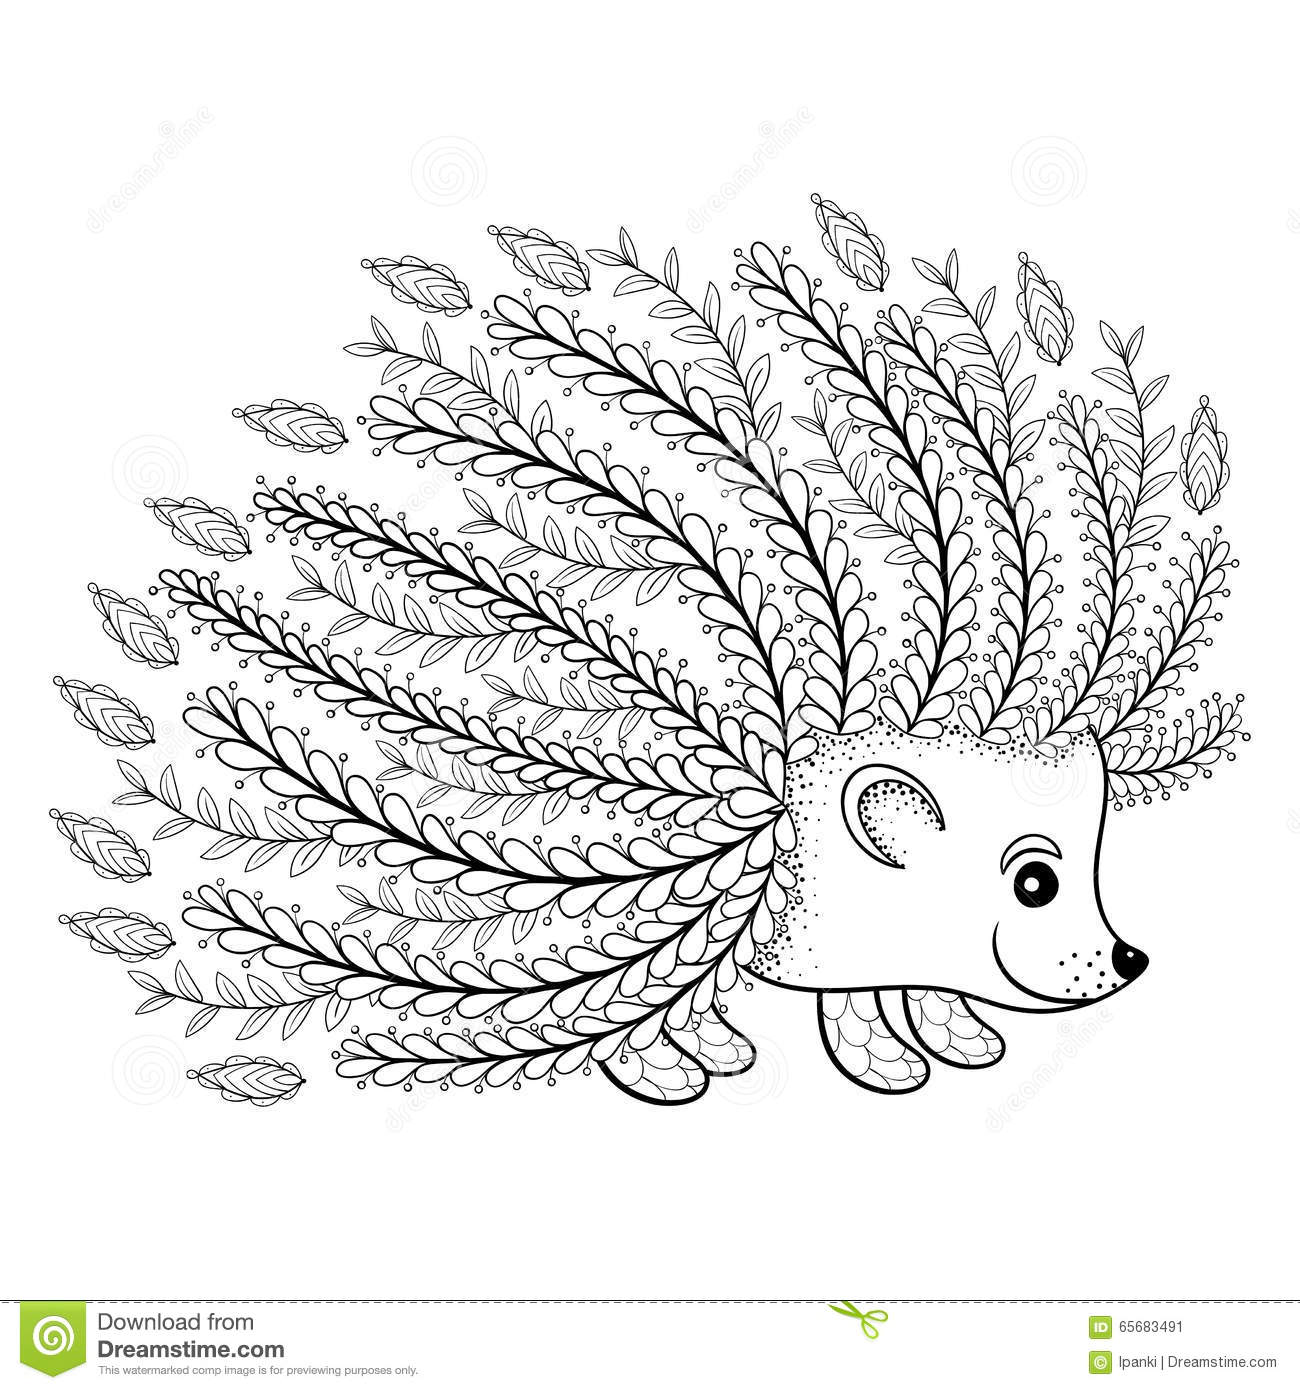 Hand Drawn Artistic Hedgehog For Adult Coloring Page In